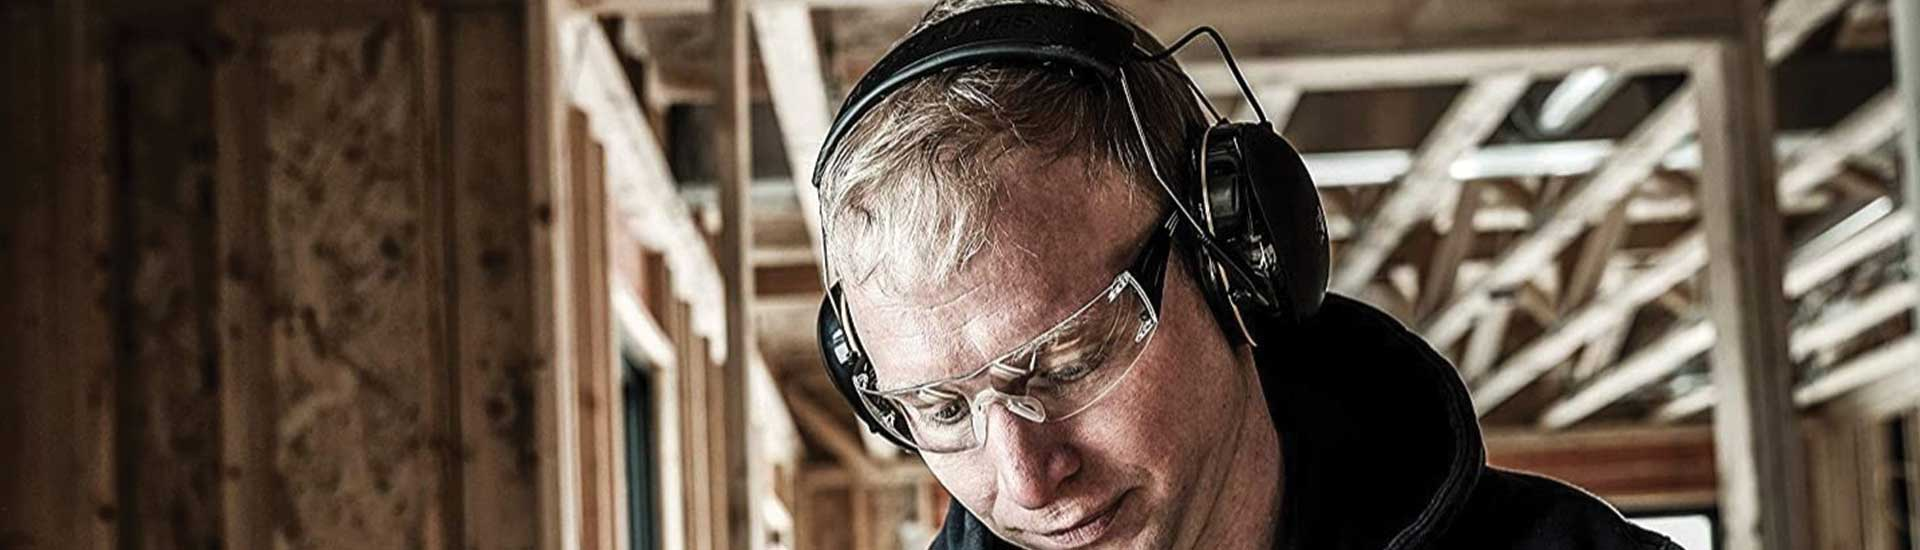 Electrical Industry Ear & Hearing Protection